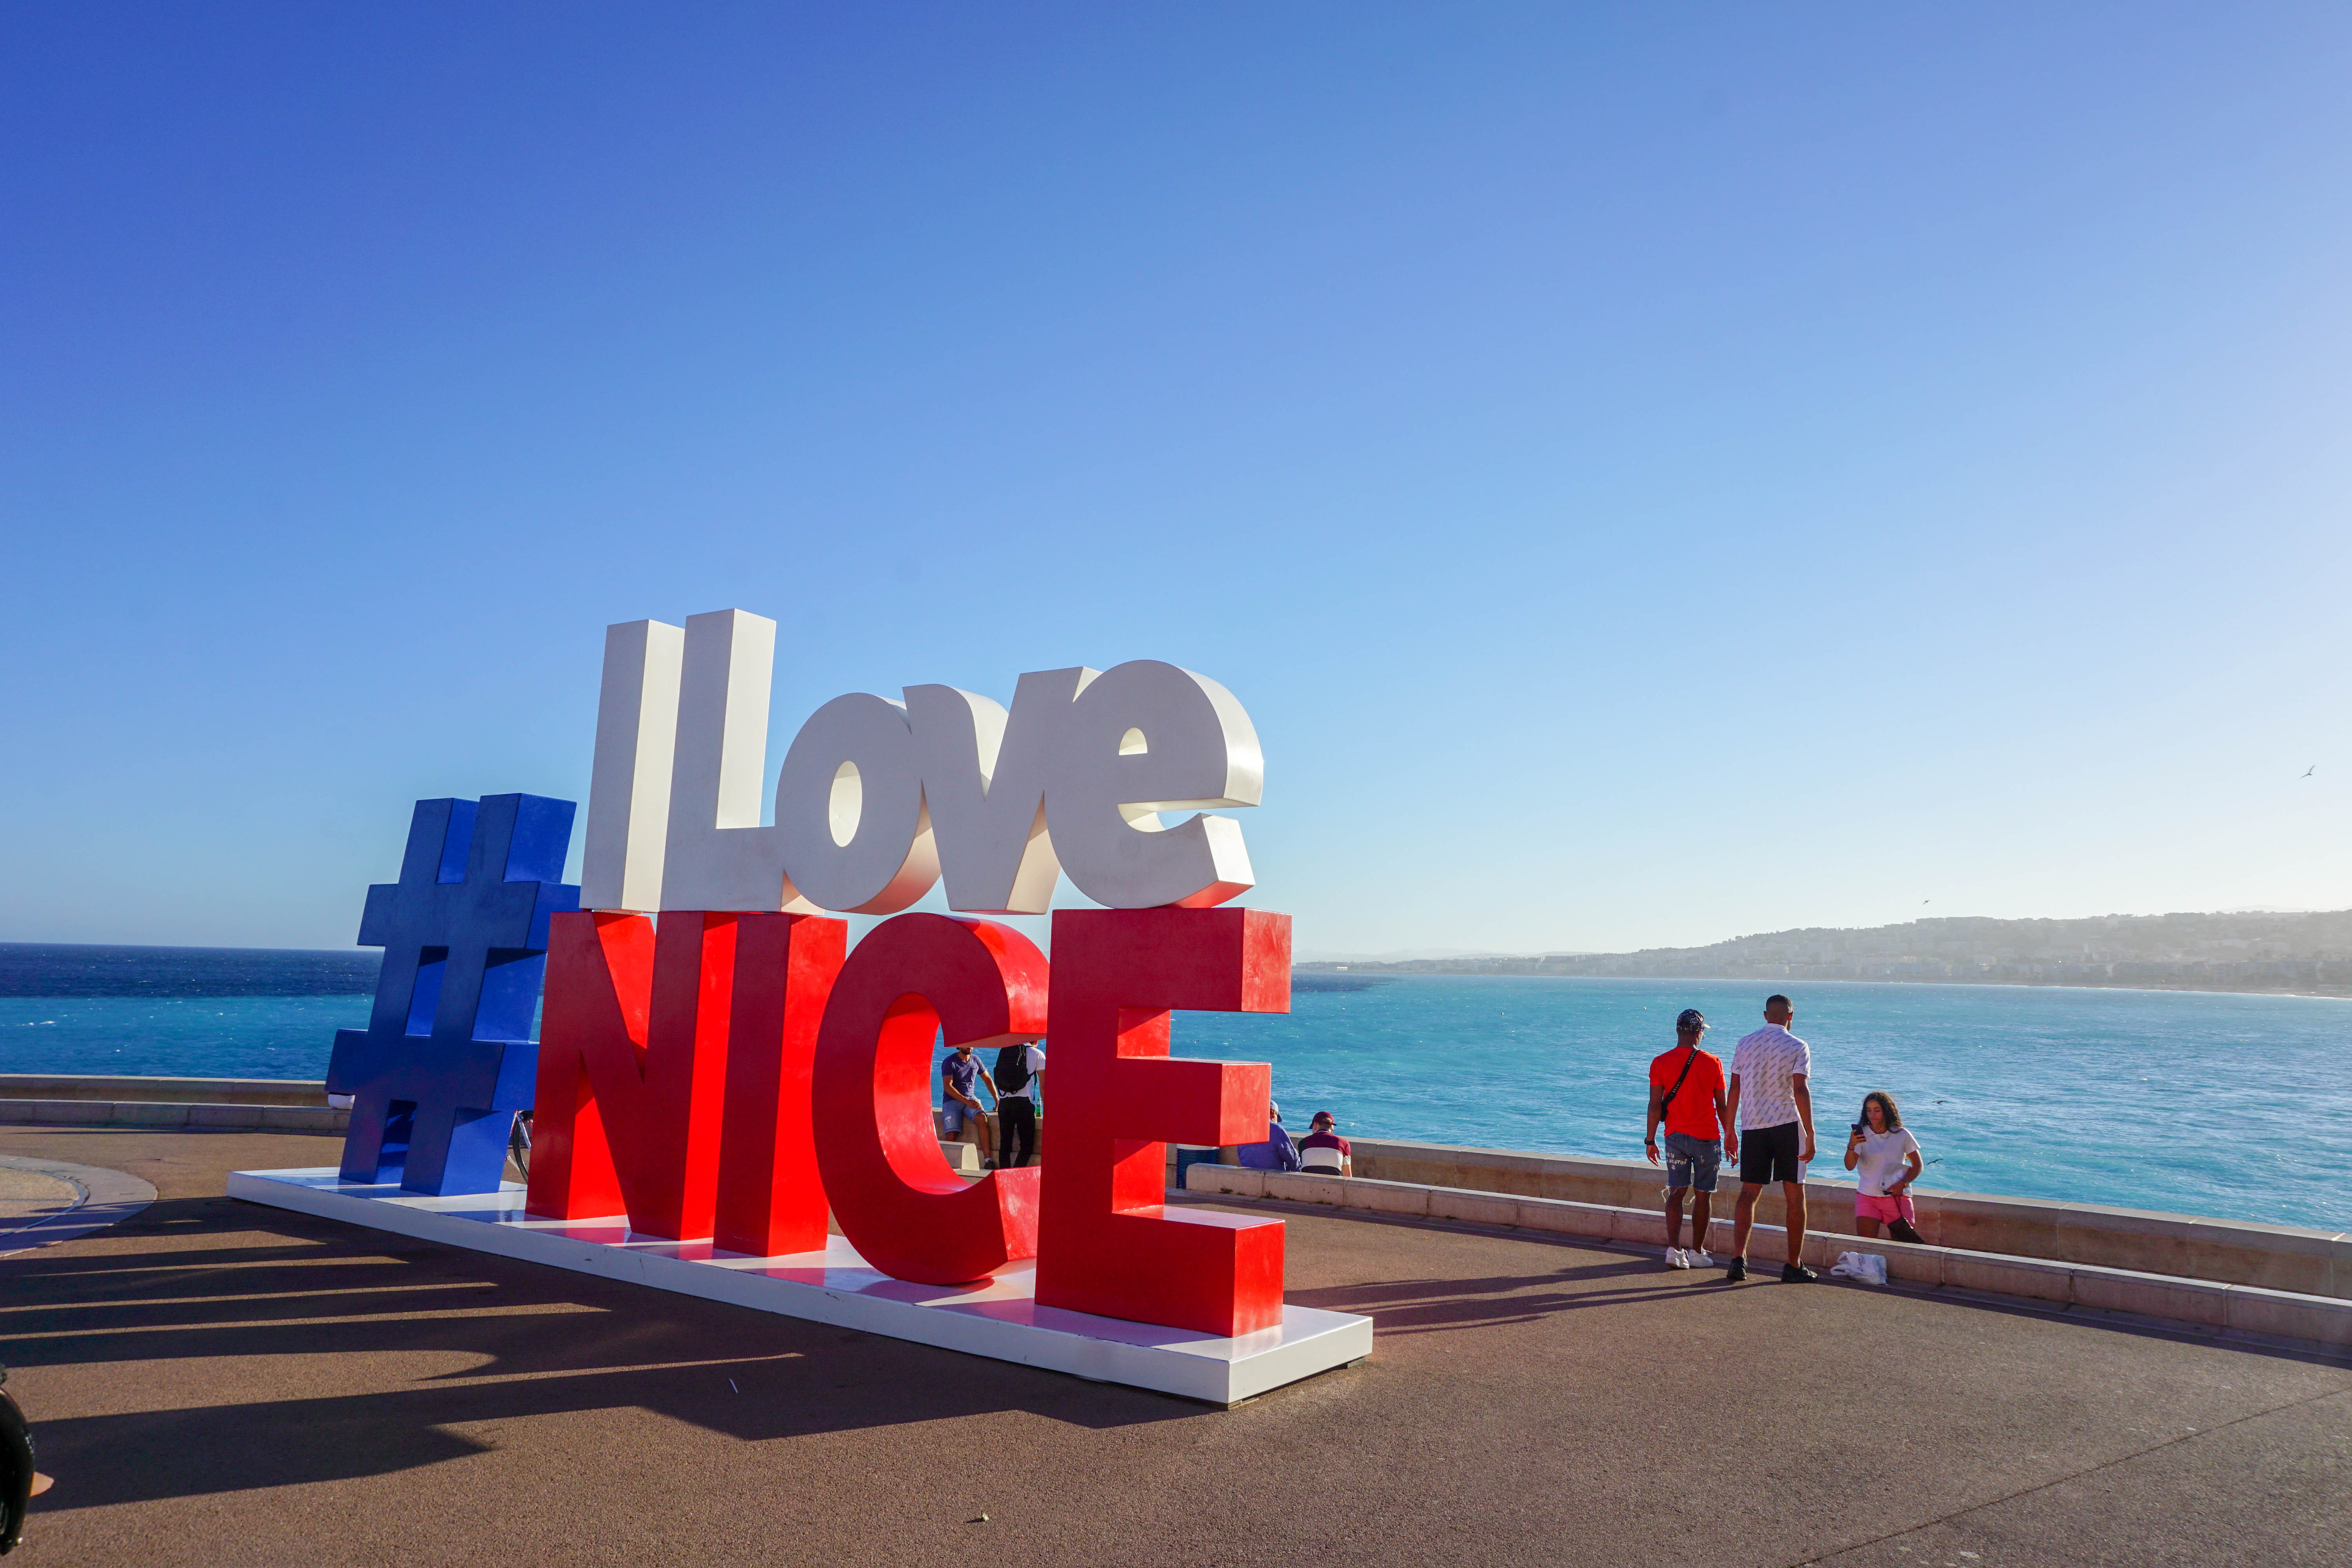 The #ILoveNice sign in city center Nice with blue sea in the background